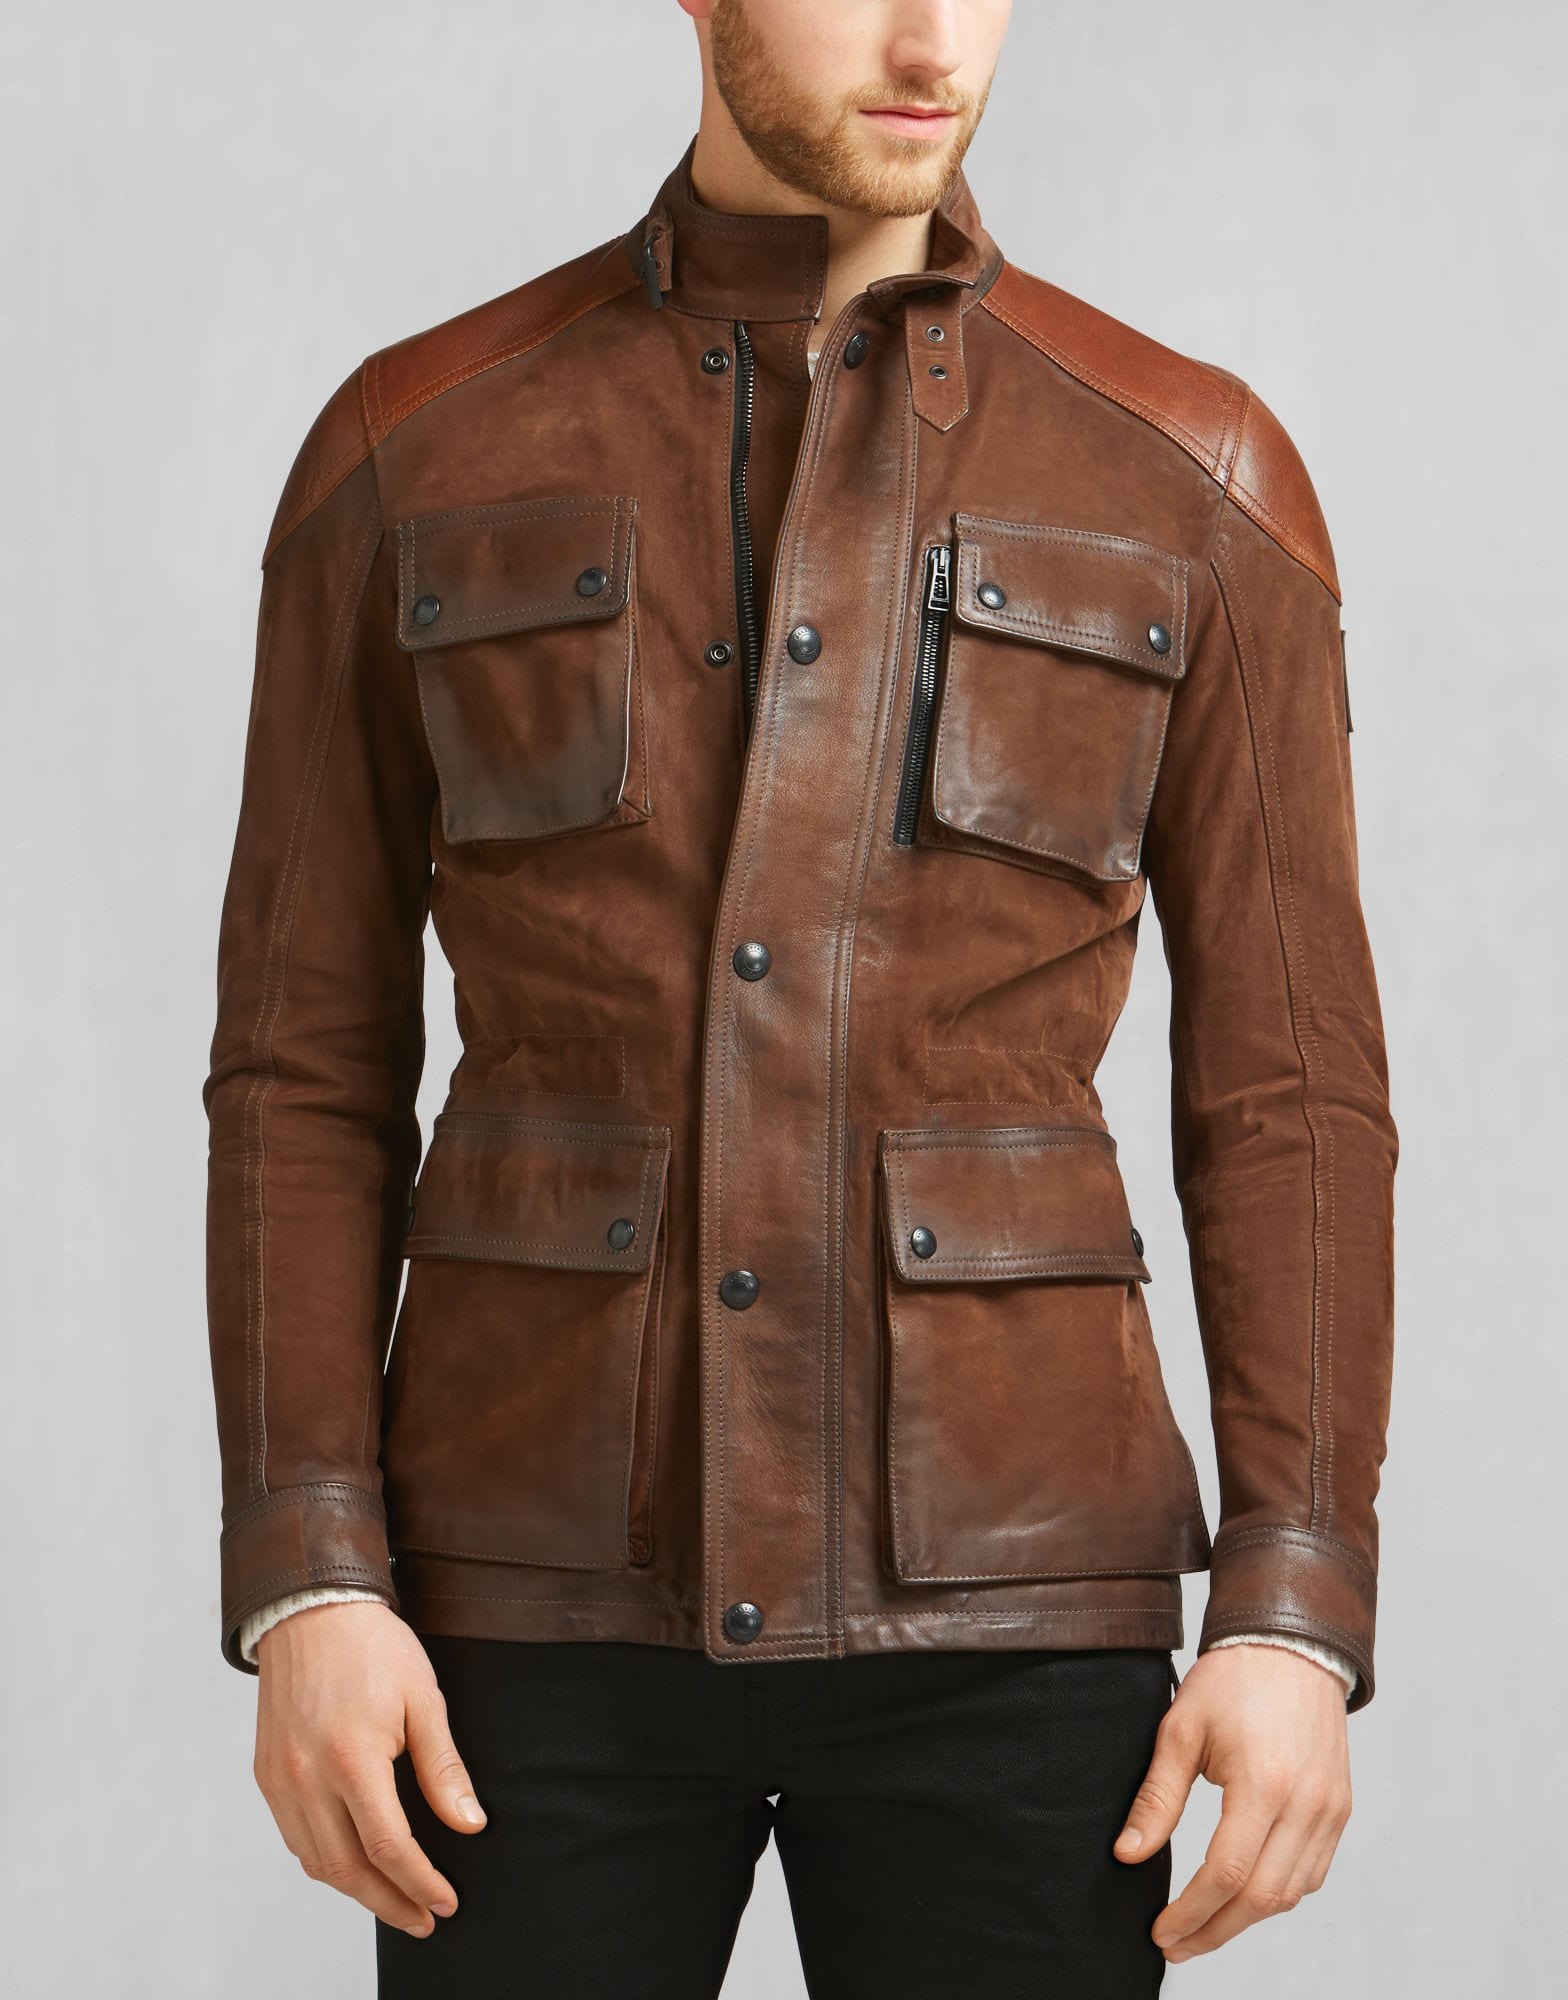 mens leather jackets style photo - 1